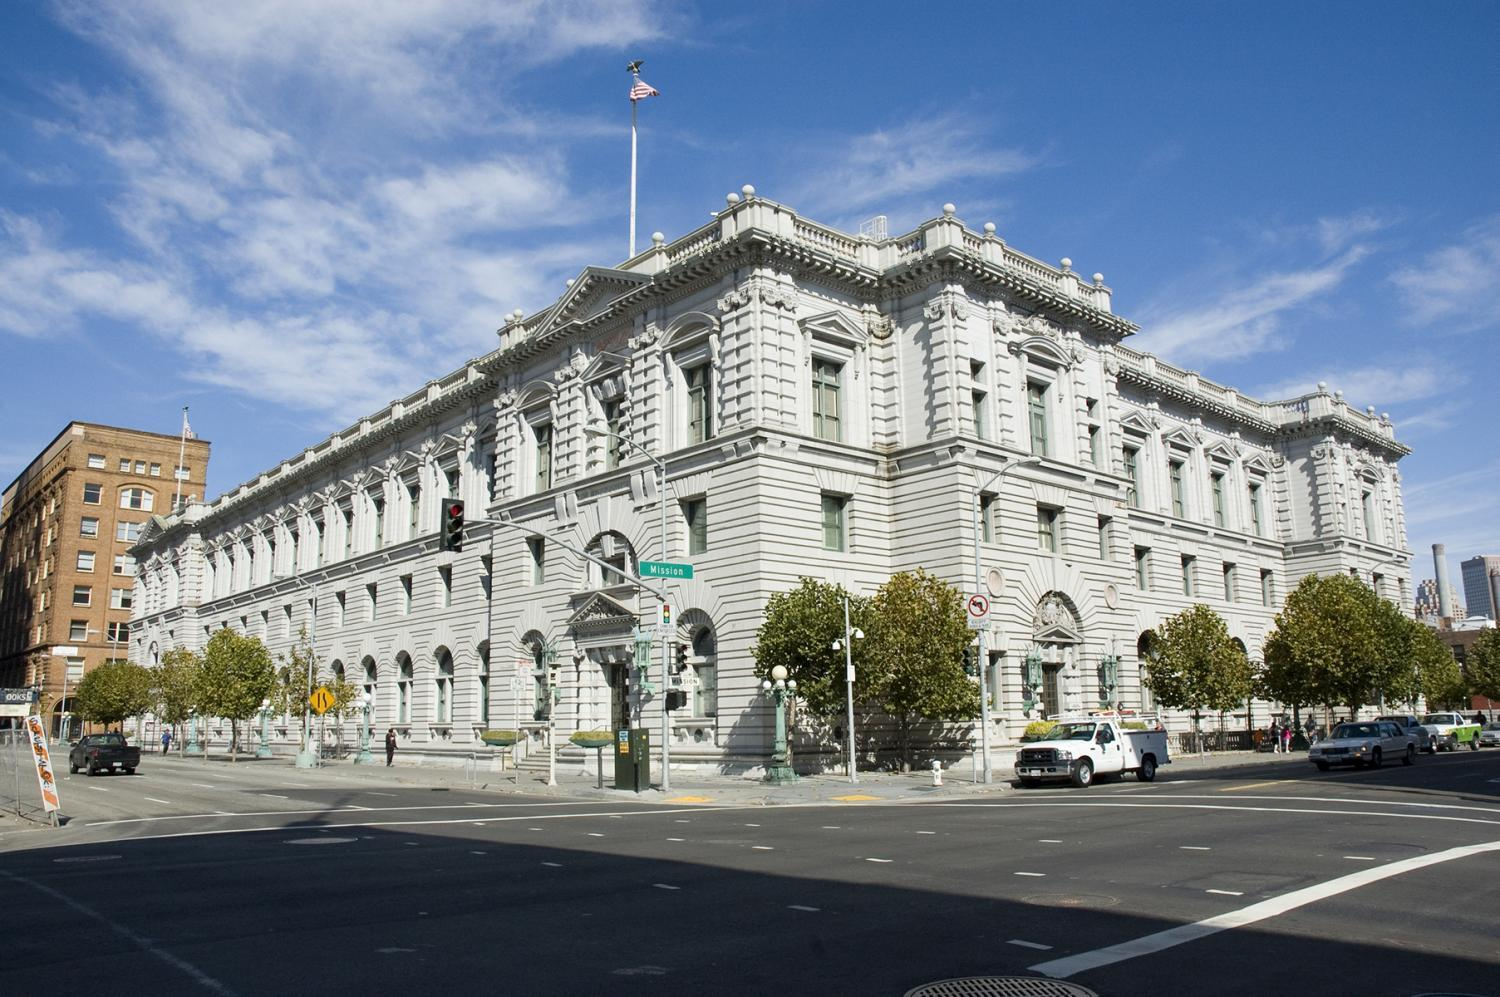 U.S. Court of Appeals for the Ninth Circuit building